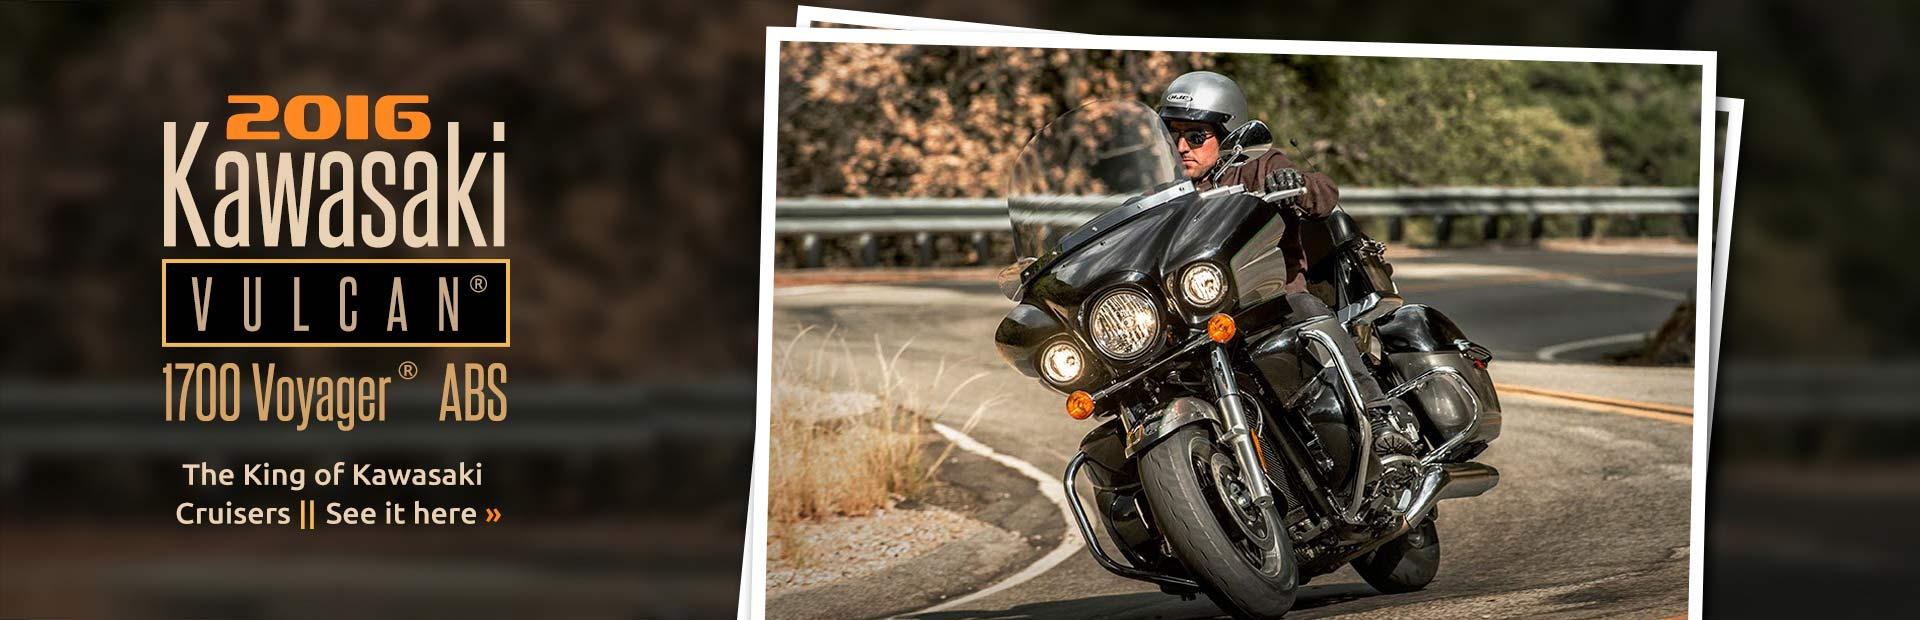 2016 Kawasaki Vulcan® 1700 Voyager® ABS: Click here to learn more about it.